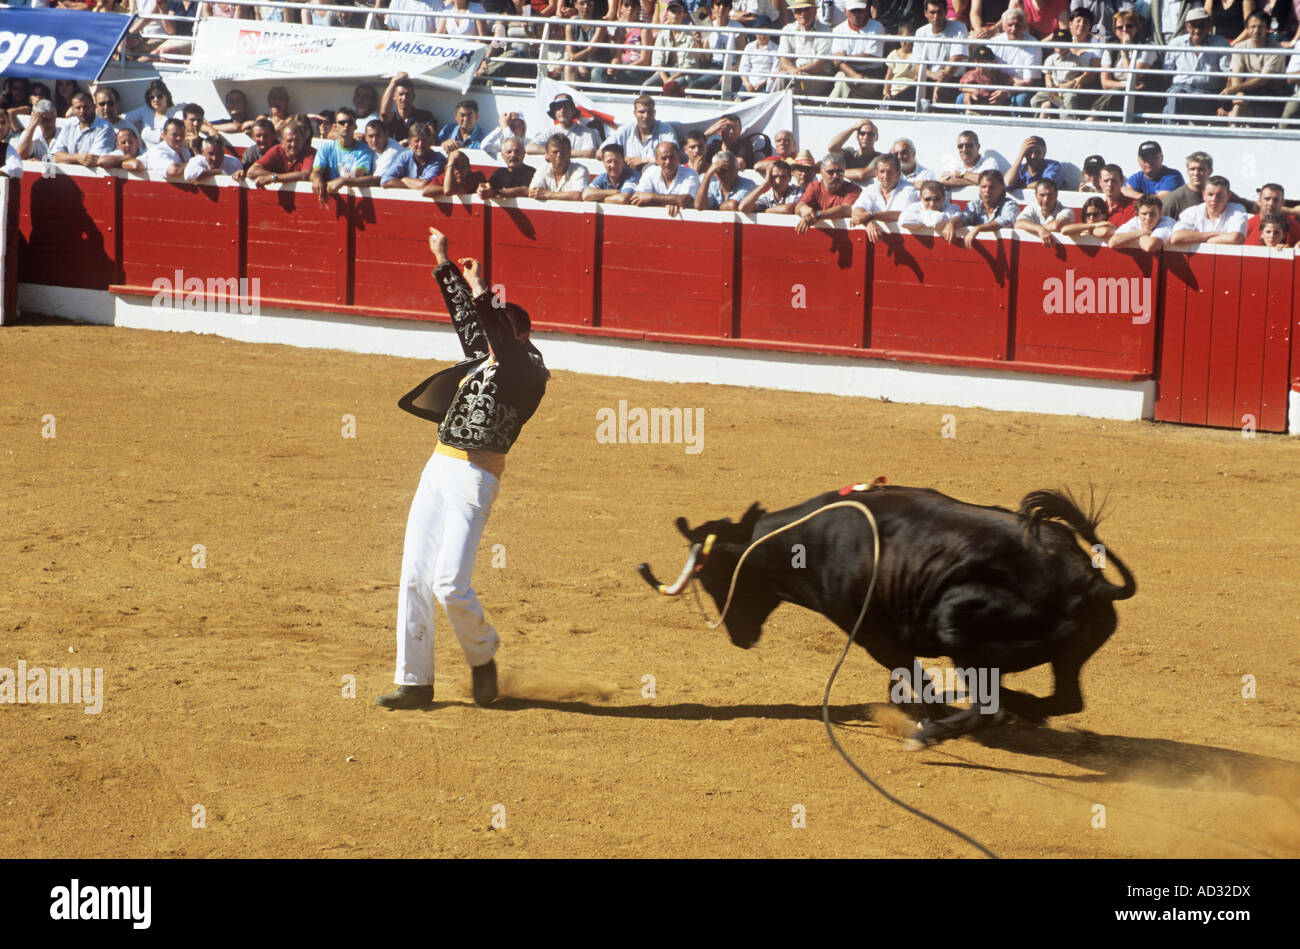 Course Landaise, a form of bloodless bullfighting where young men in boleros face frisky cows, is popular in southwest Stock Photo